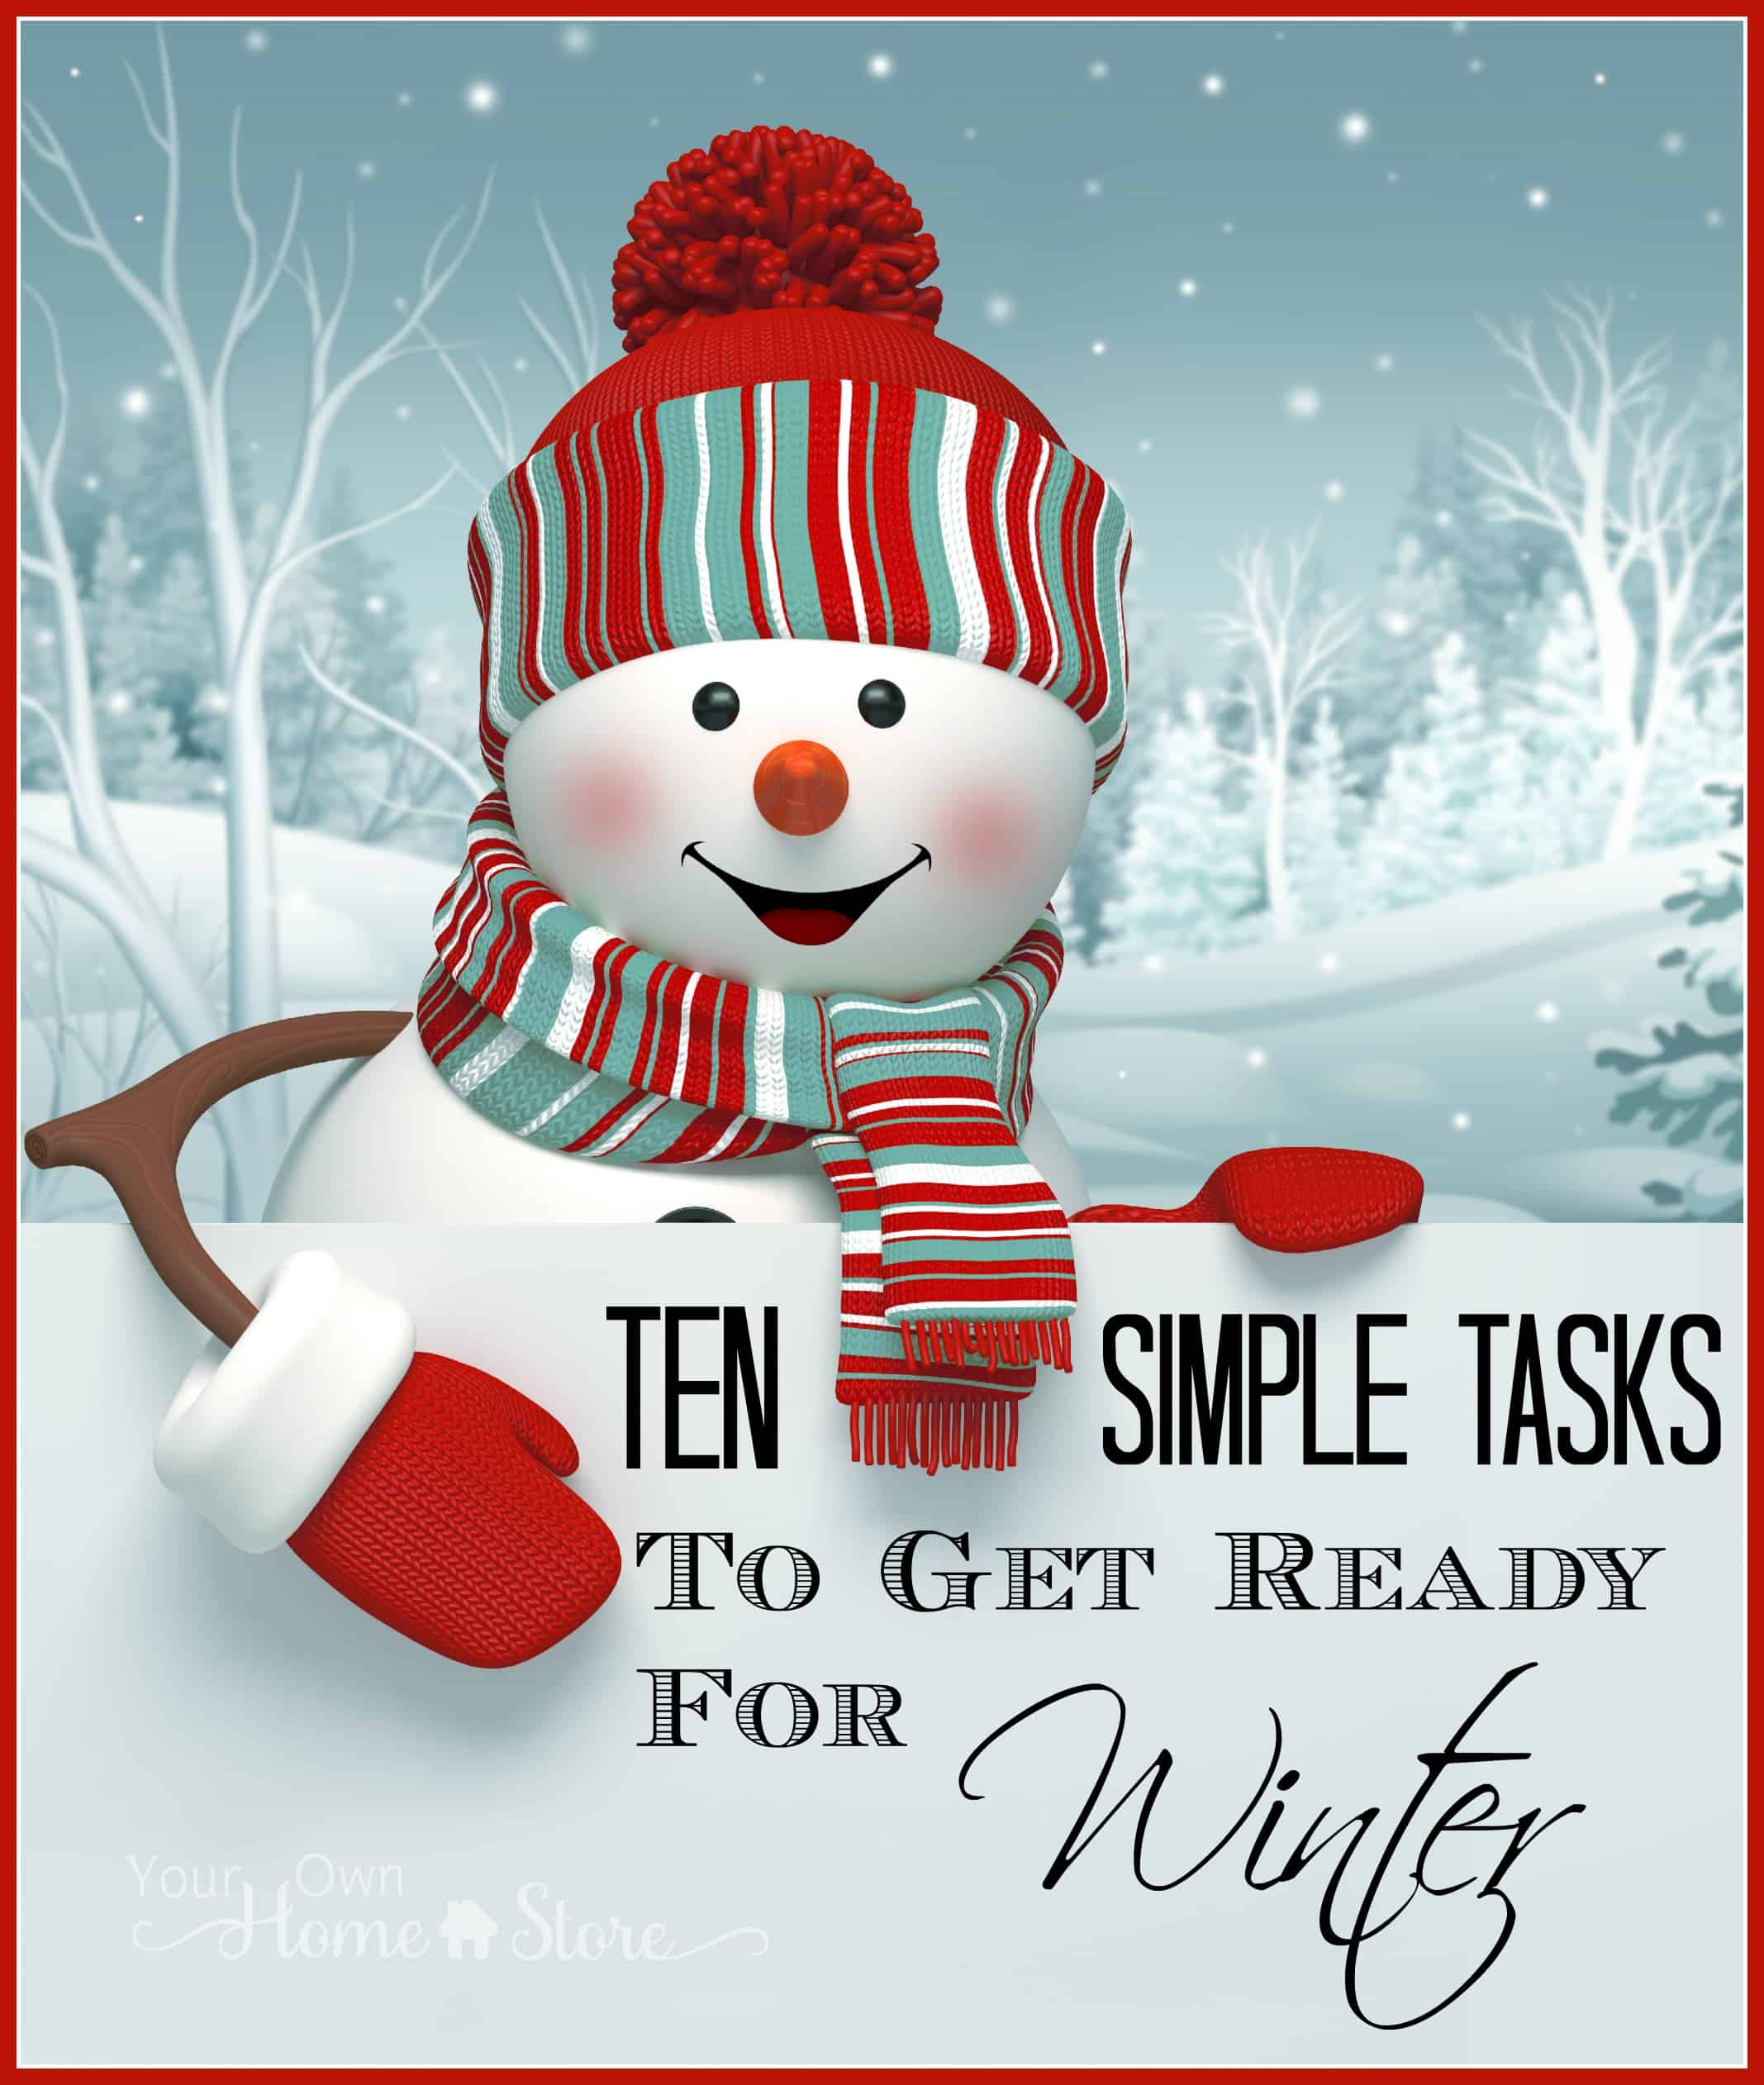 Here are 10 simple things you can do NOW to get ready for winter!  http://simplefamilypreparedness.com/ready-for-winter/